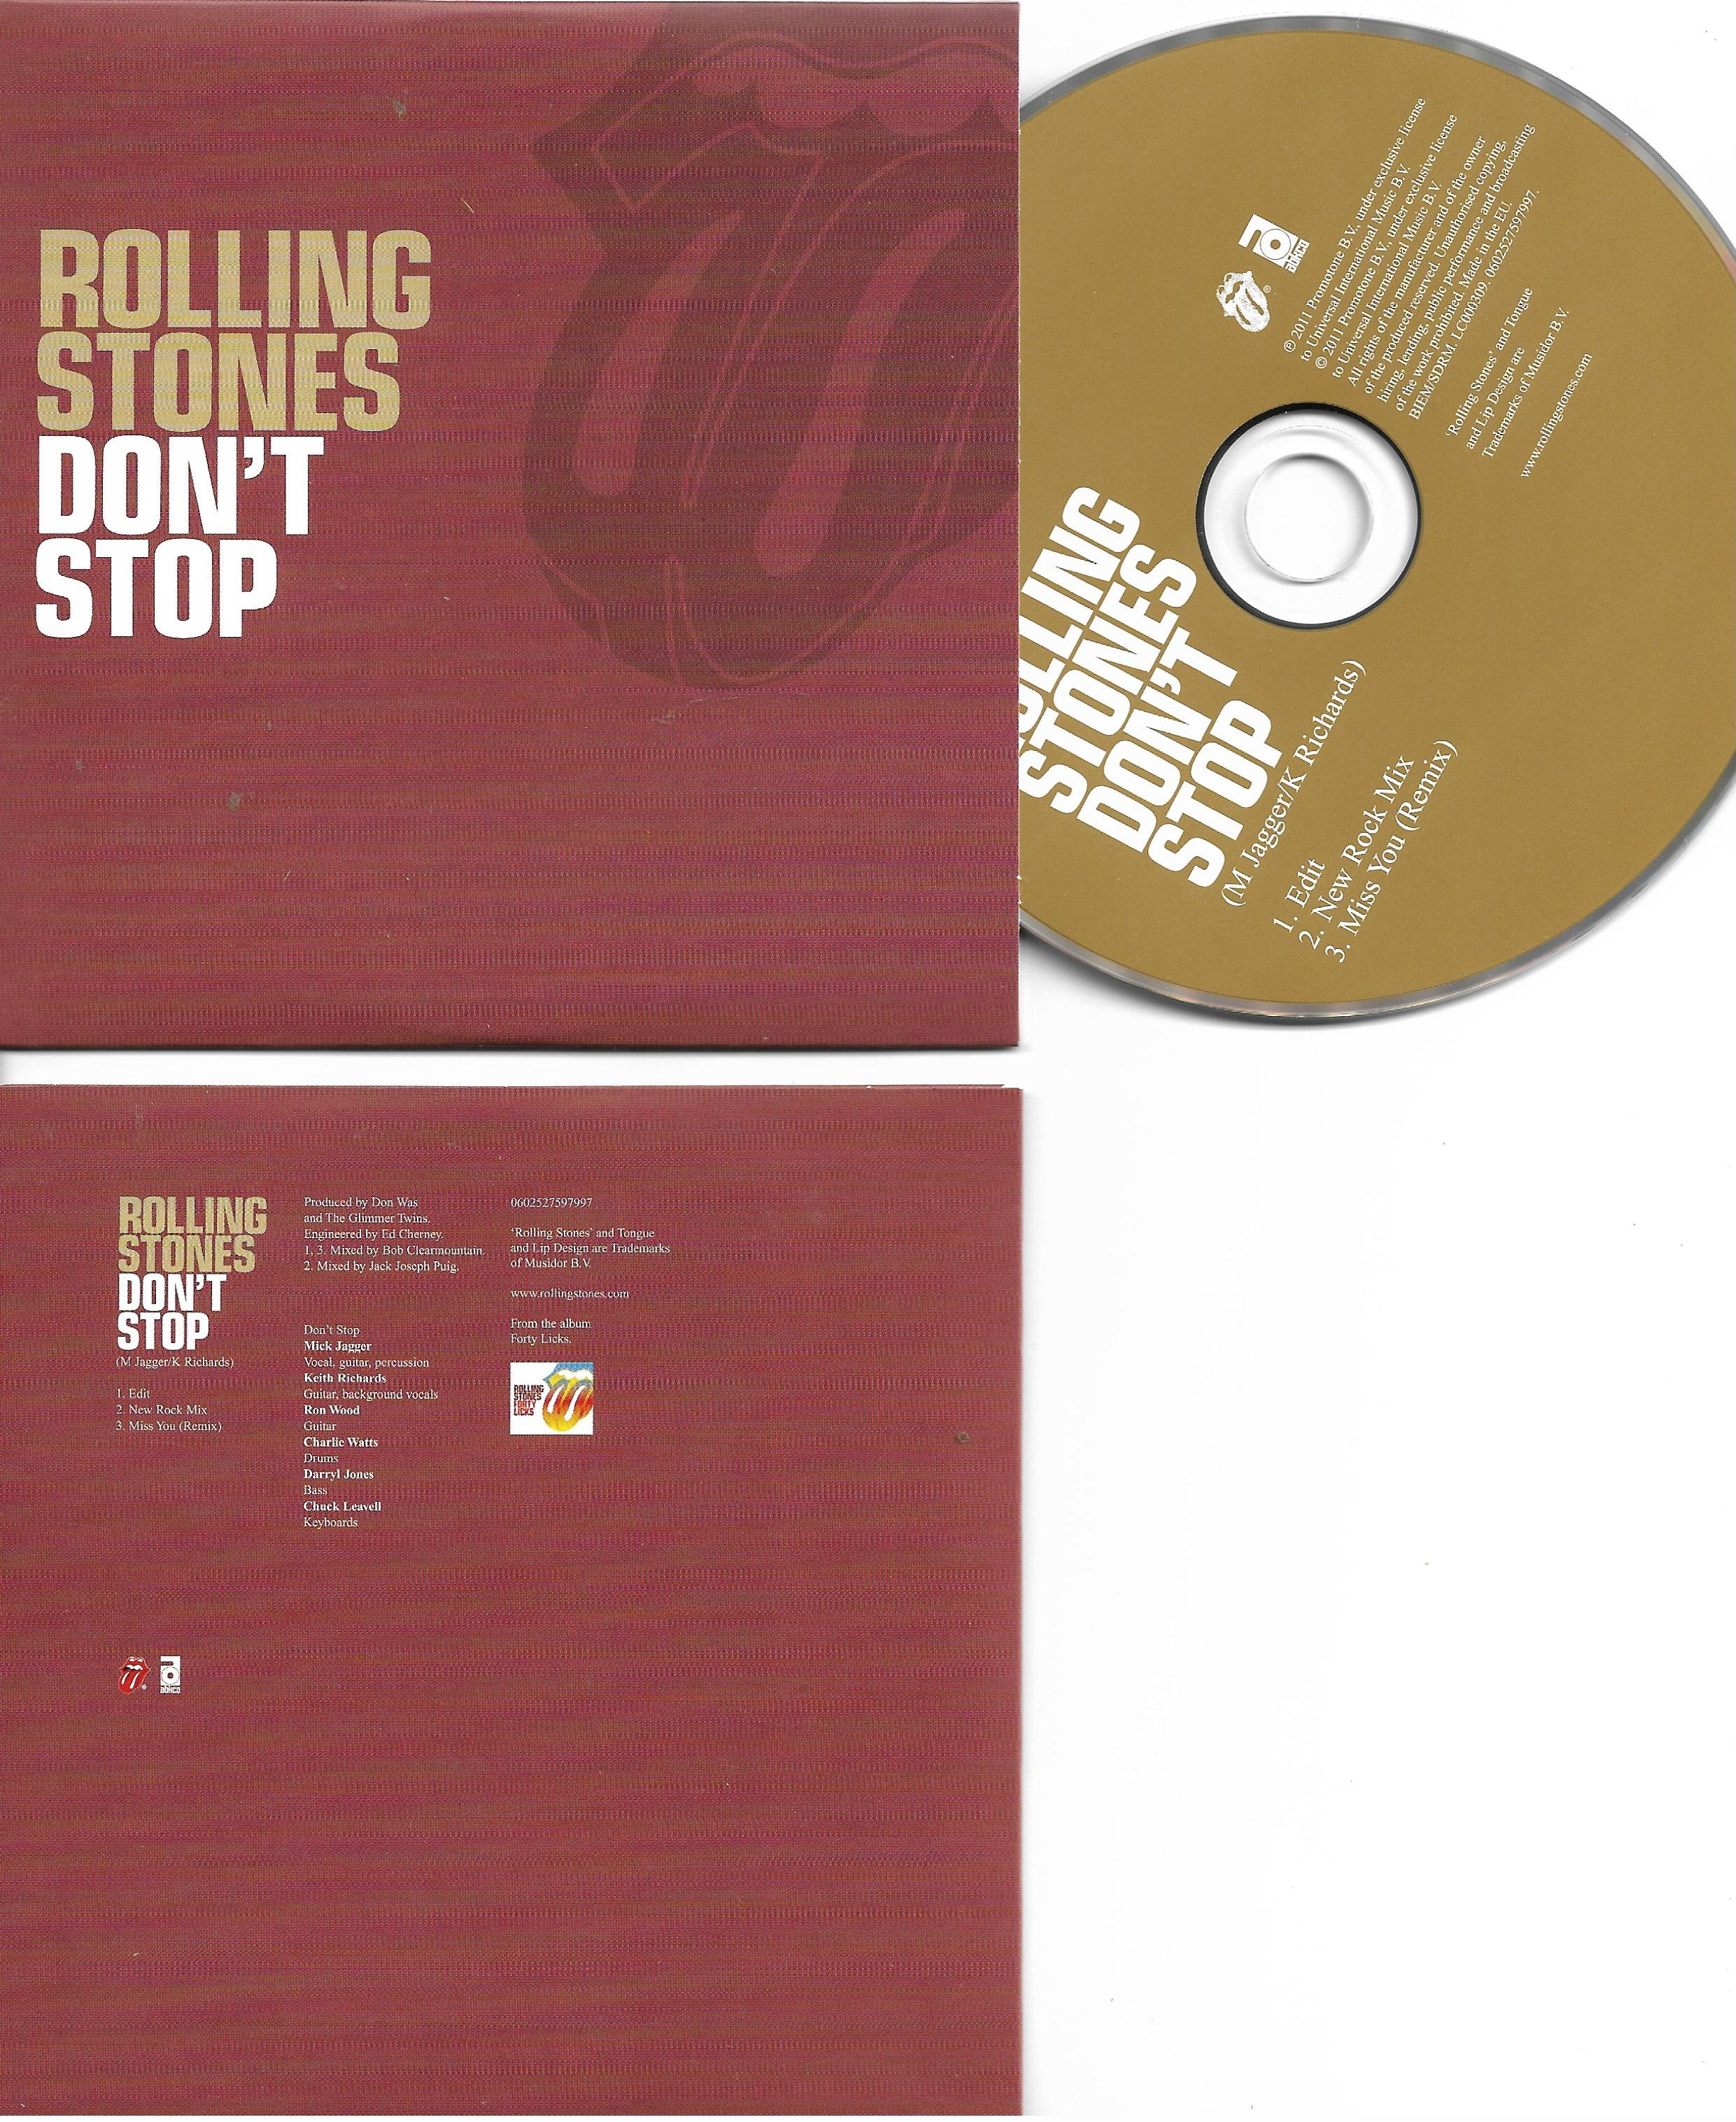 THE ROLLING STONES - Don't stop - Miss you - REMIX - 3-Track CARD SLEEVE - CD single